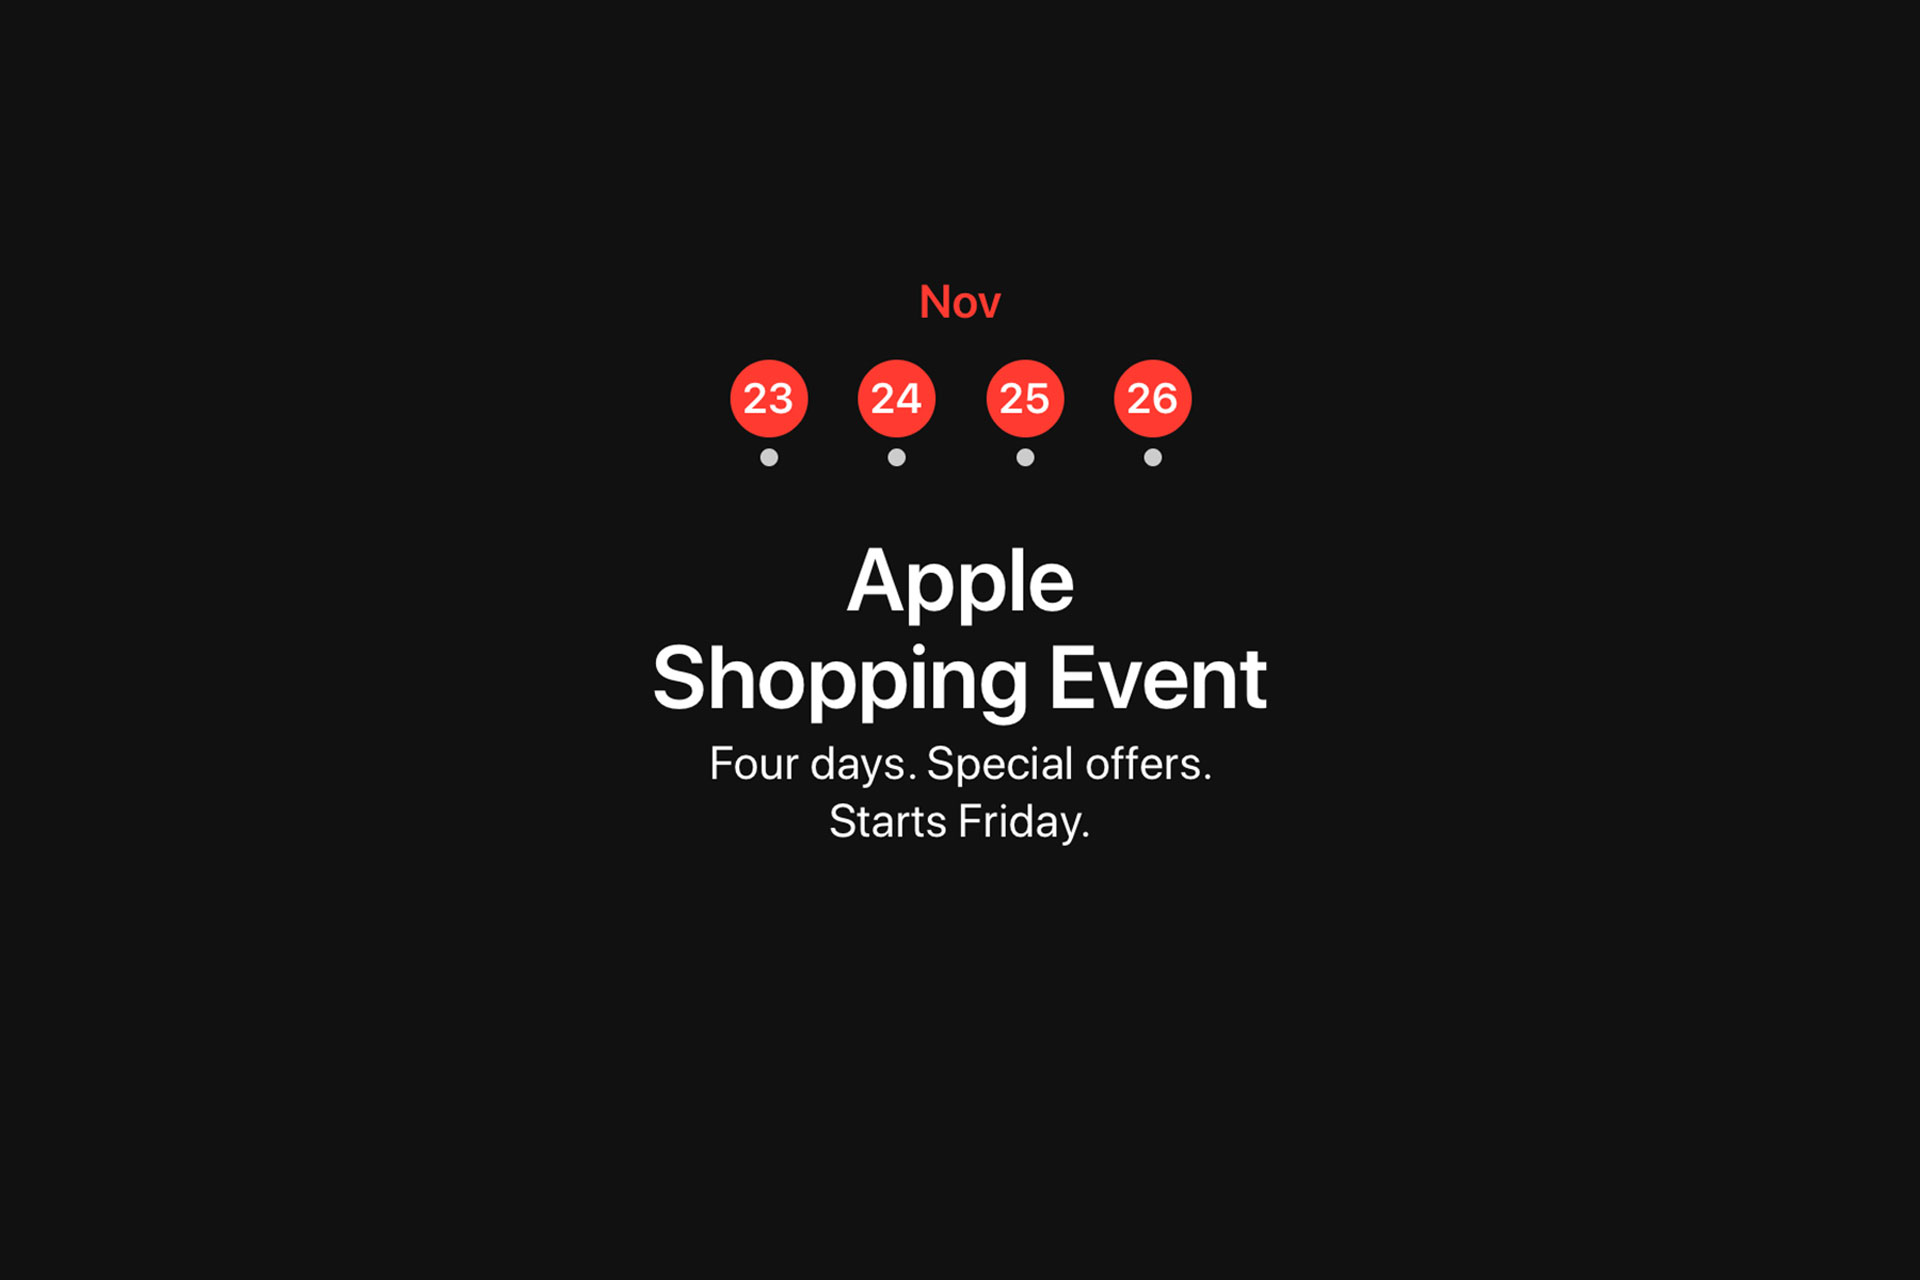 apple announces 4 day shopping event during black friday and cyber monday mac prices australia. Black Bedroom Furniture Sets. Home Design Ideas